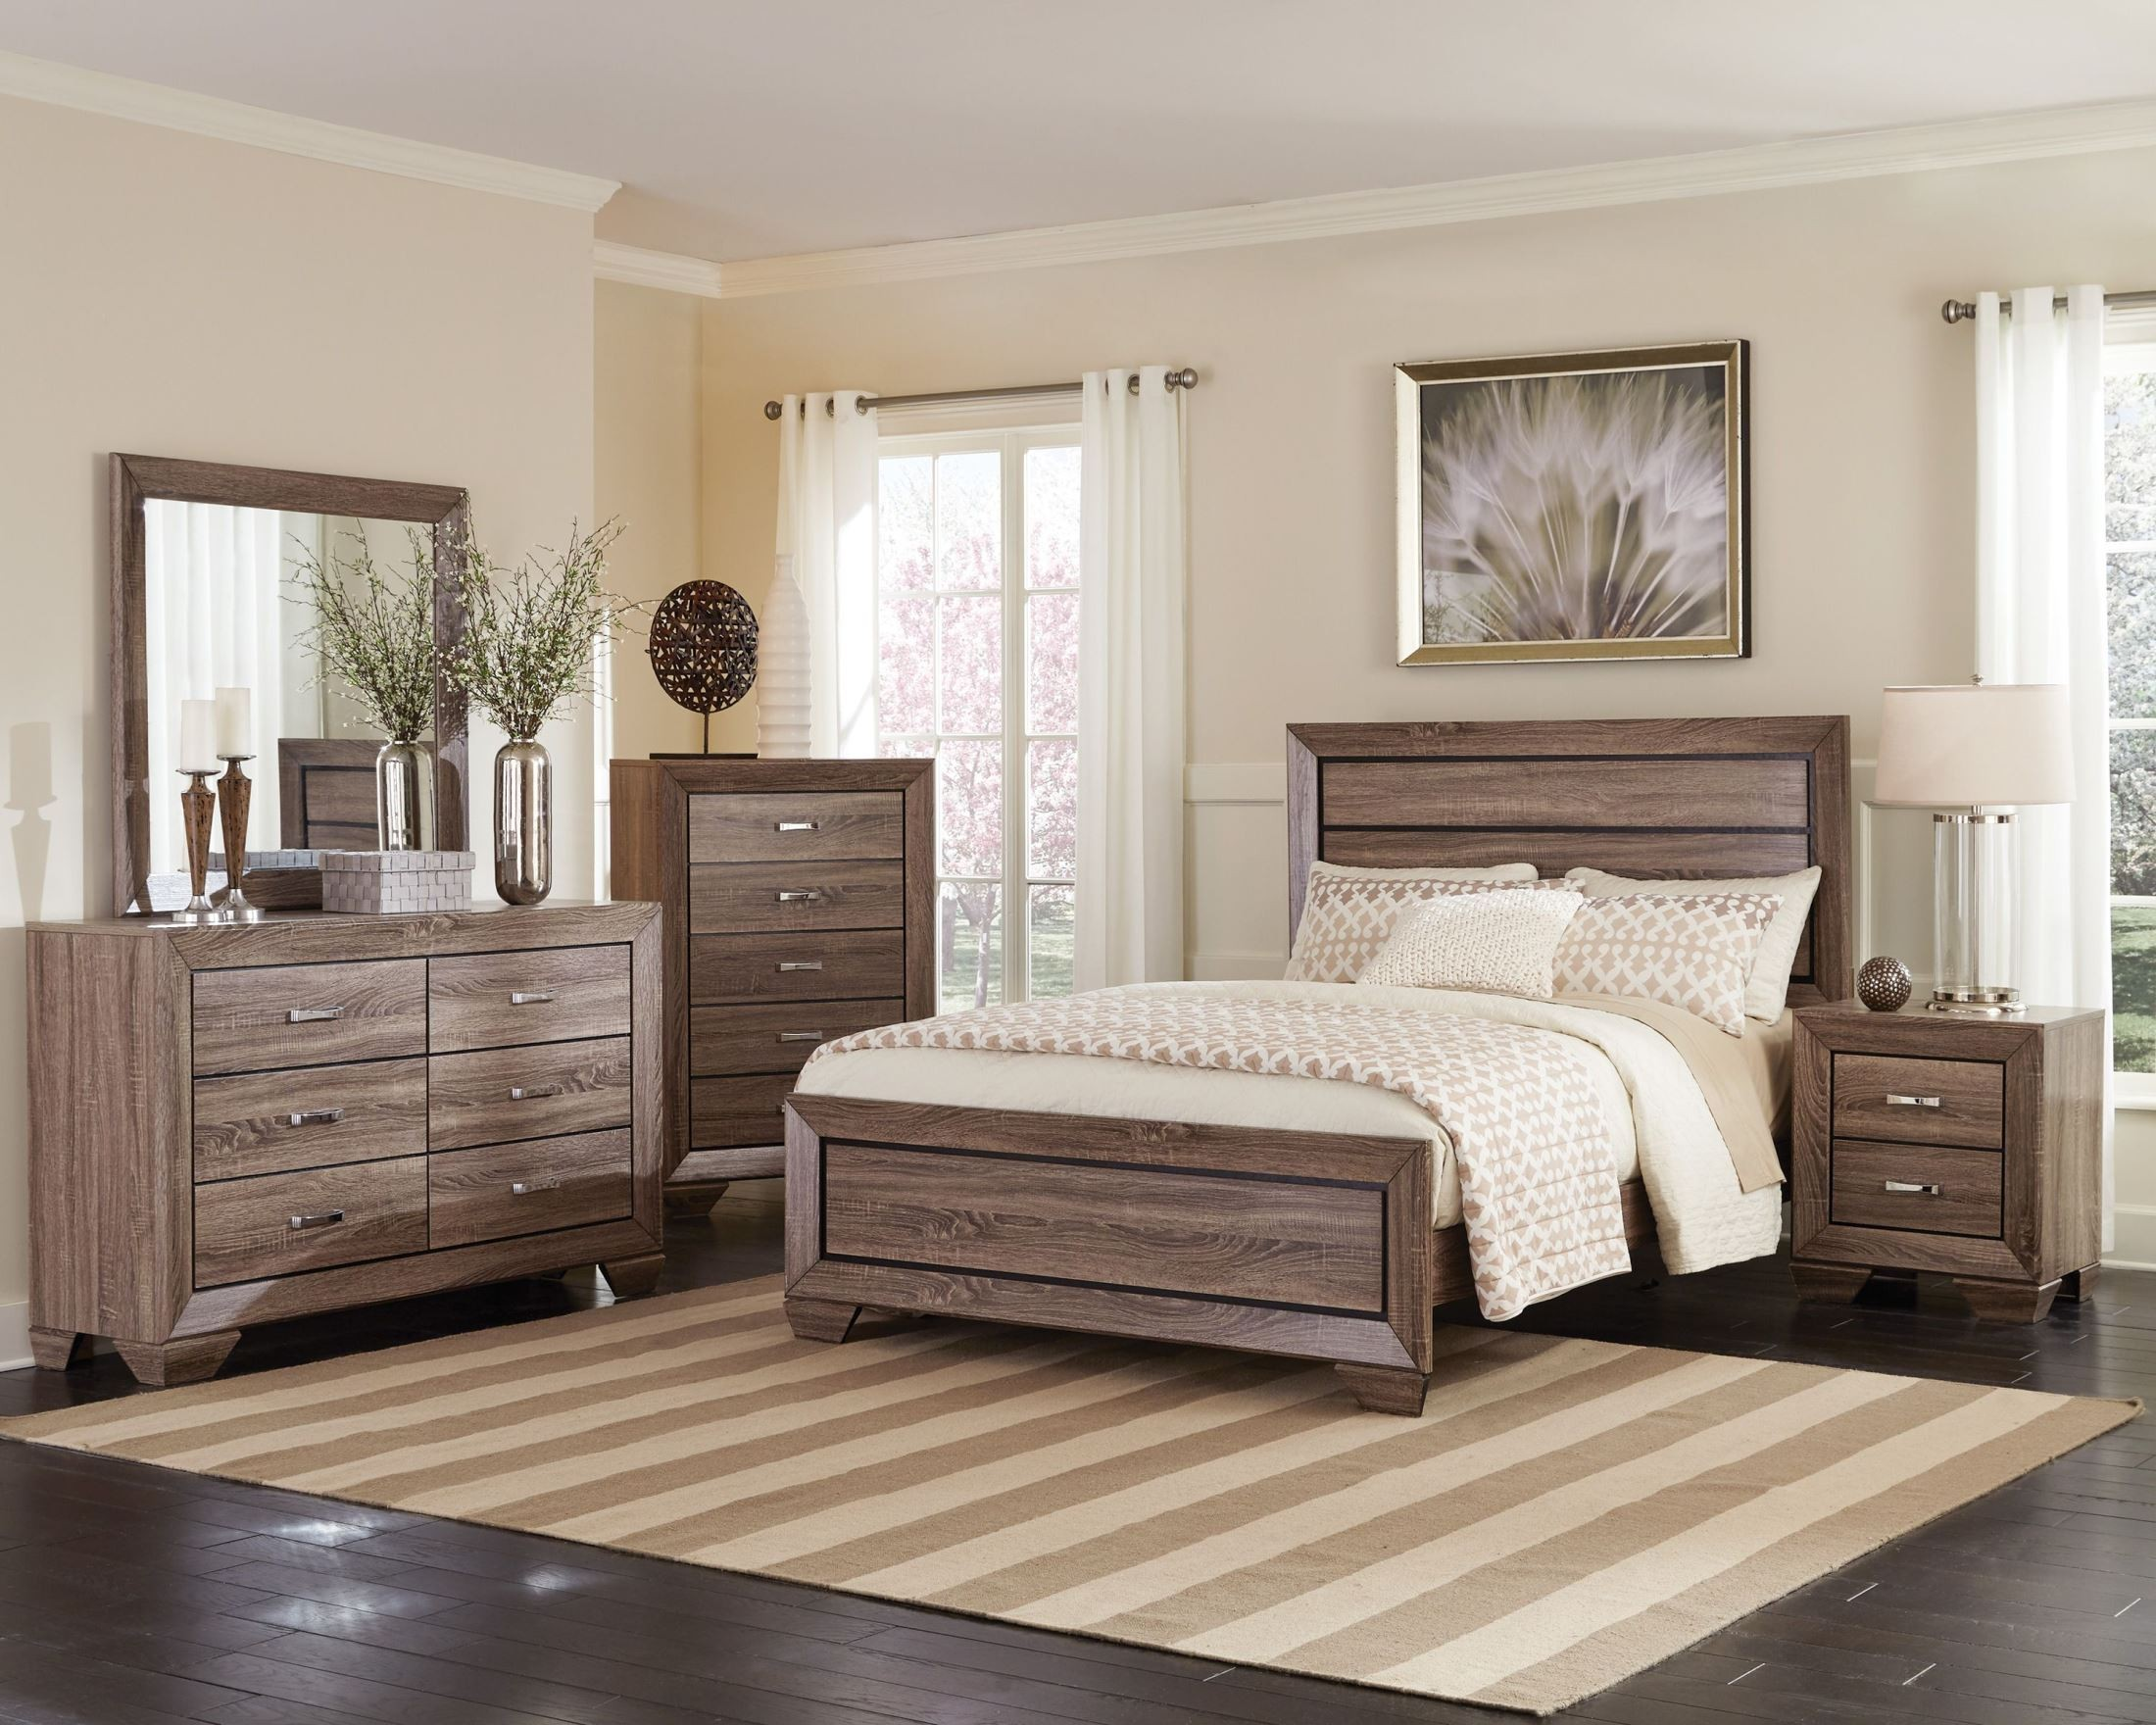 Kauffman washed taupe panel bedroom set from coaster for I need bedroom furniture